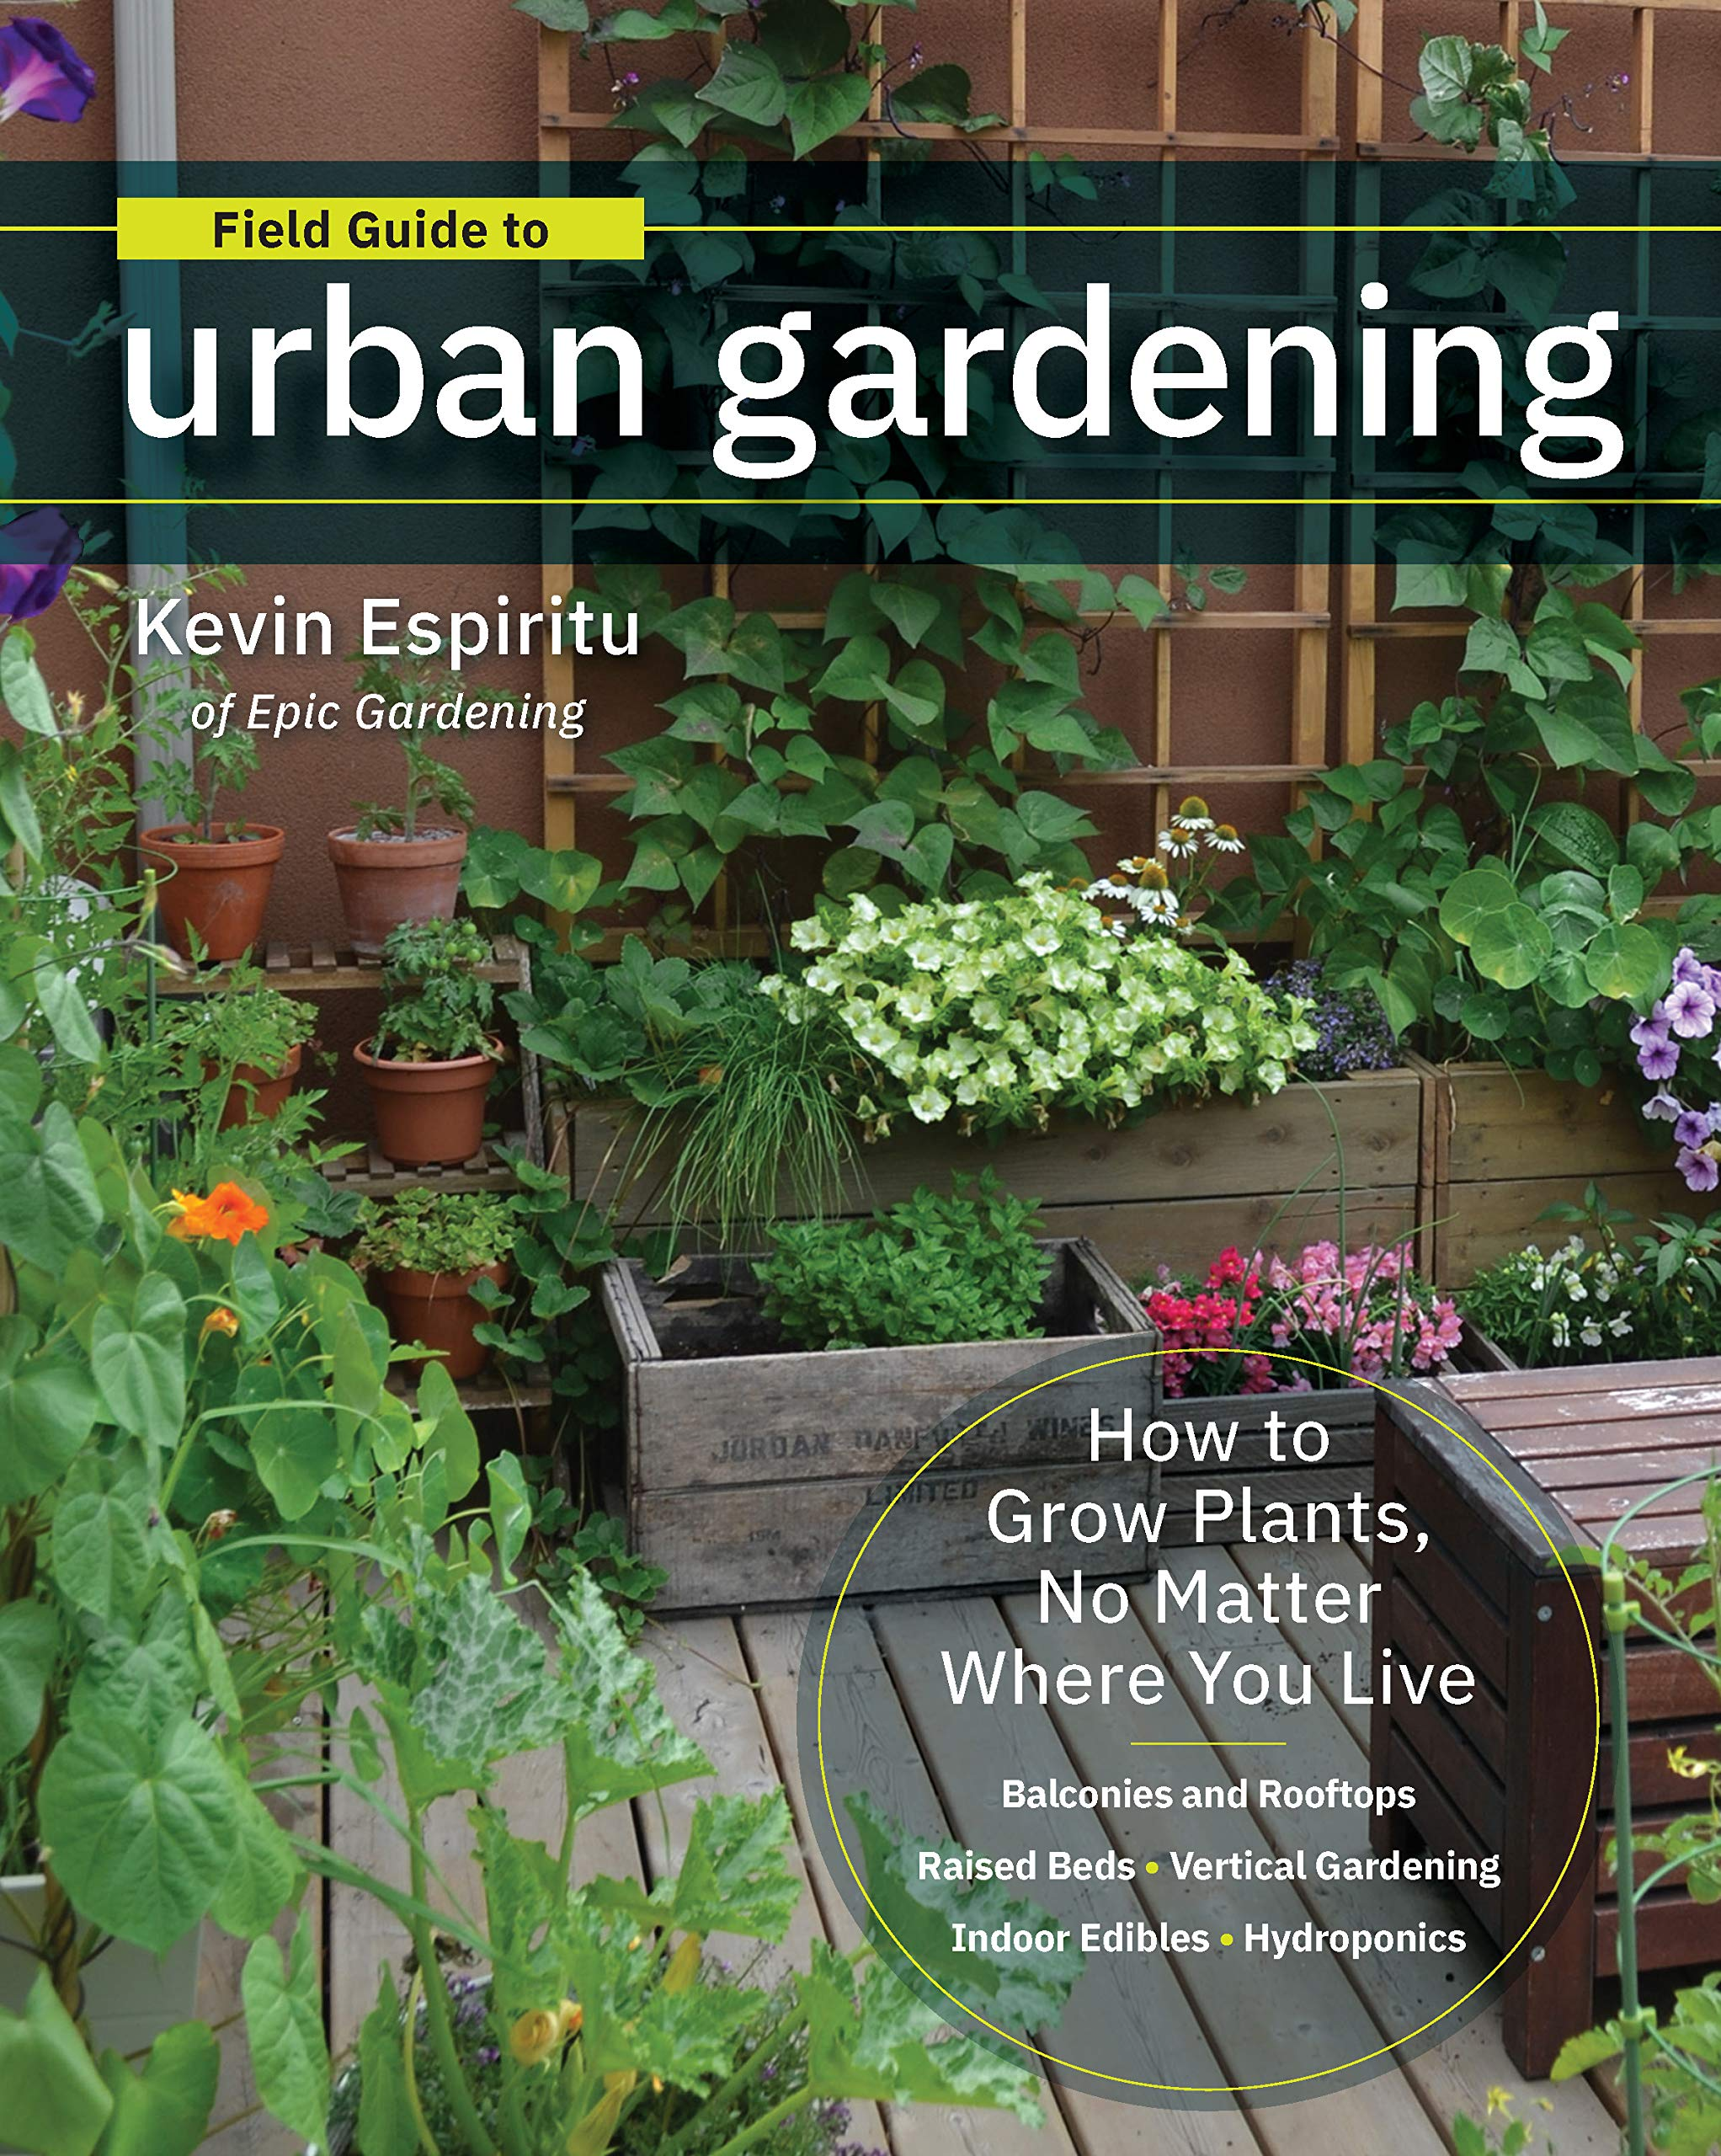 Field Guide To Urban Gardening How To Grow Plants No Matter Where You Live Raised Beds Vertical Gardening Indoor Edibles Balconies And Rooftops Hydroponics Espiritu Kevin 9780760363966 Amazon Com Books